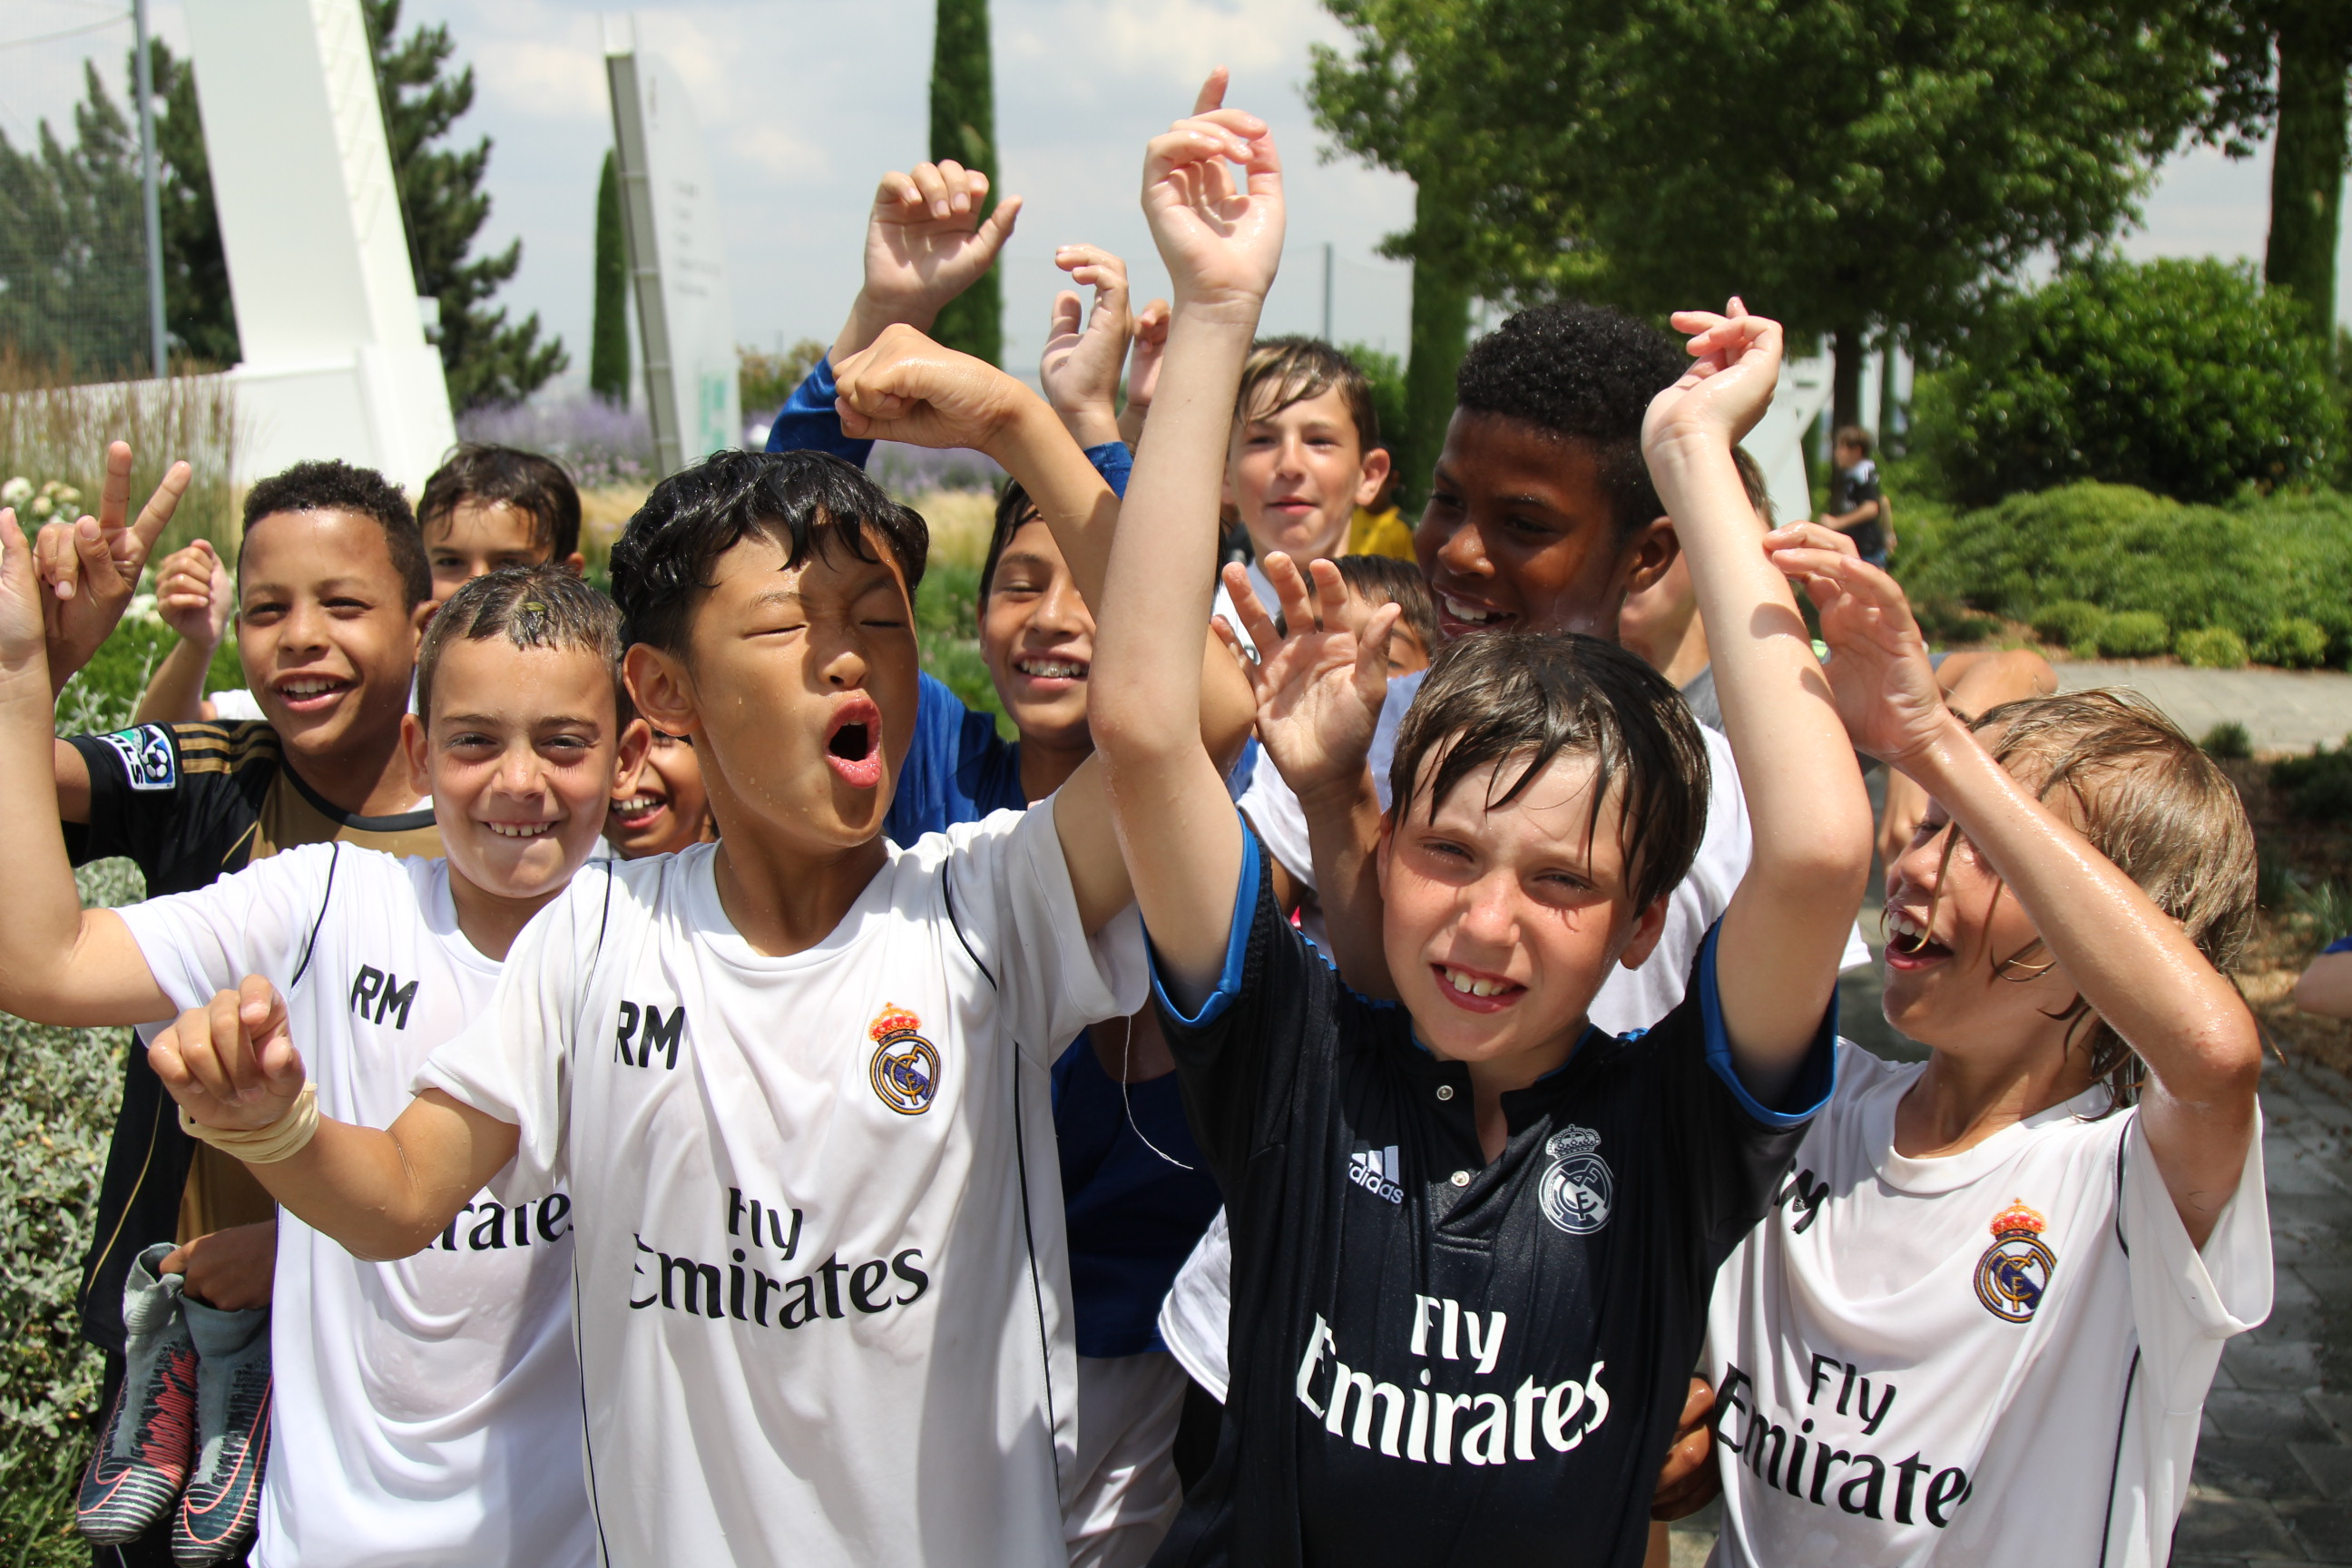 Campus Experience Real Madrid Foundation